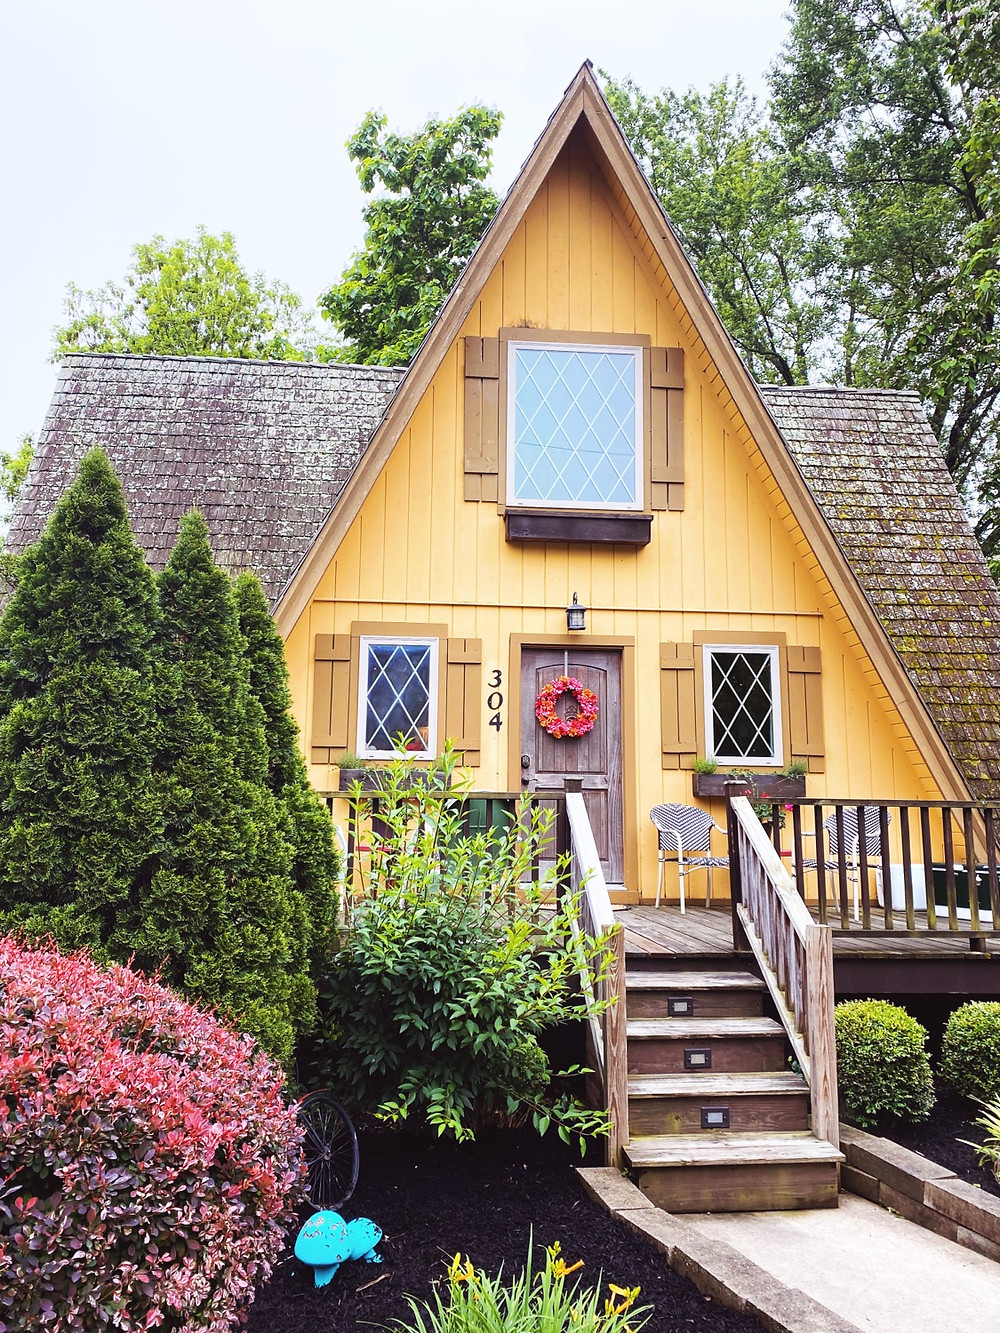 Airbnb A-Frame Cottage Yellow Bentonville AR M.Reed Studio M x Reed Studio Branding and Website Design St. Charles MO Meghan Reed